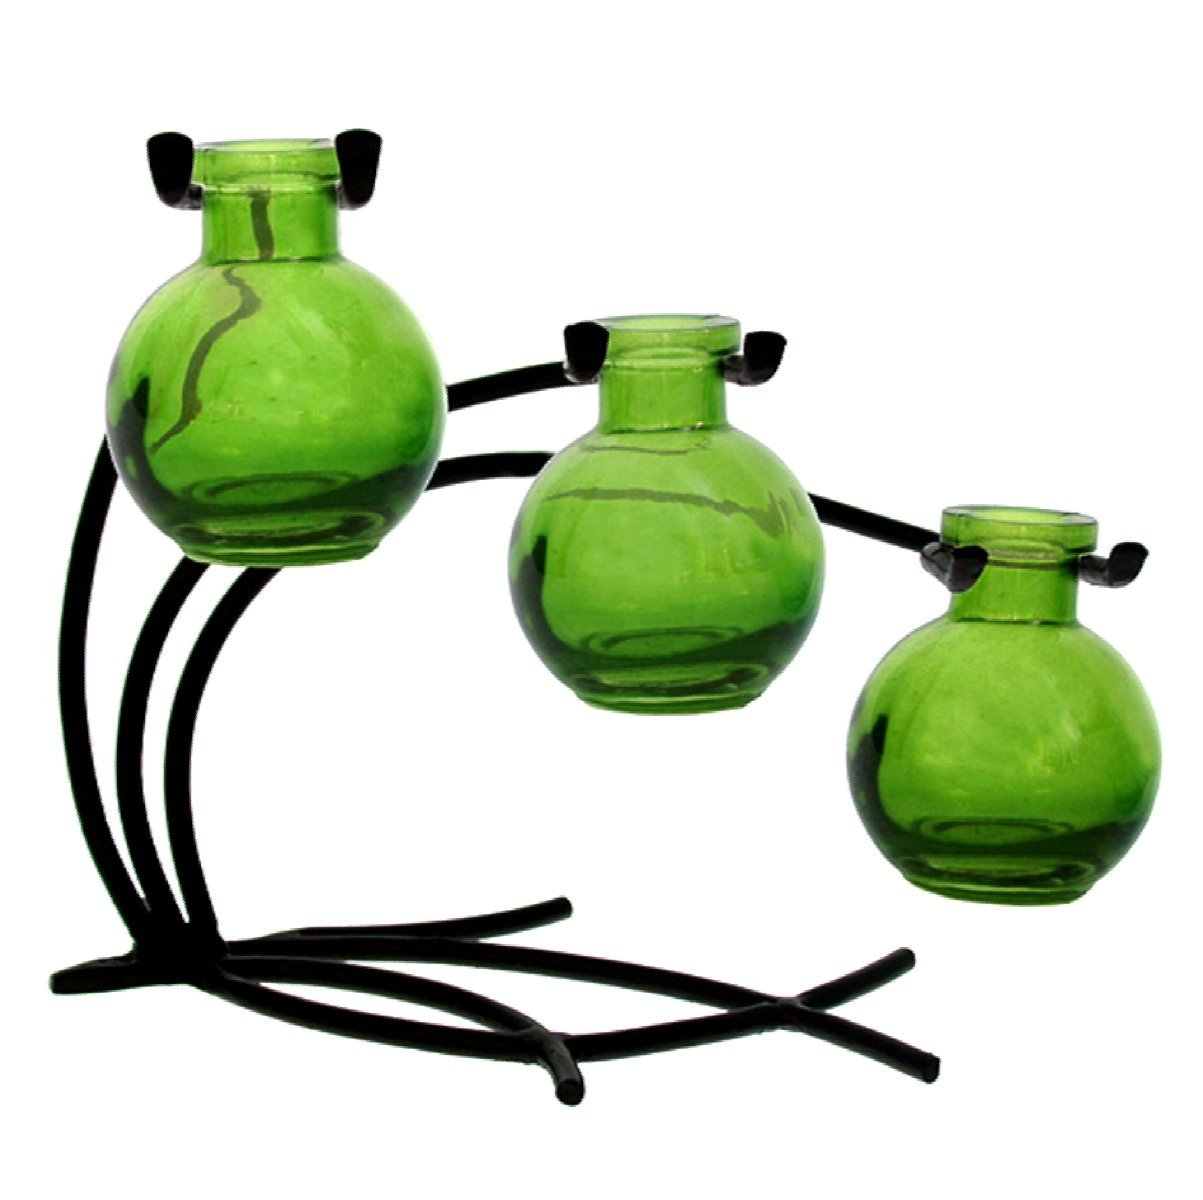 Plant Starter Vase Bud or Rooting 3 Vase Set with Stand Bud G113 Aqua Vase ~ Use as Flower Home Chic Colored Glass Floral Colorful Gift Box Included